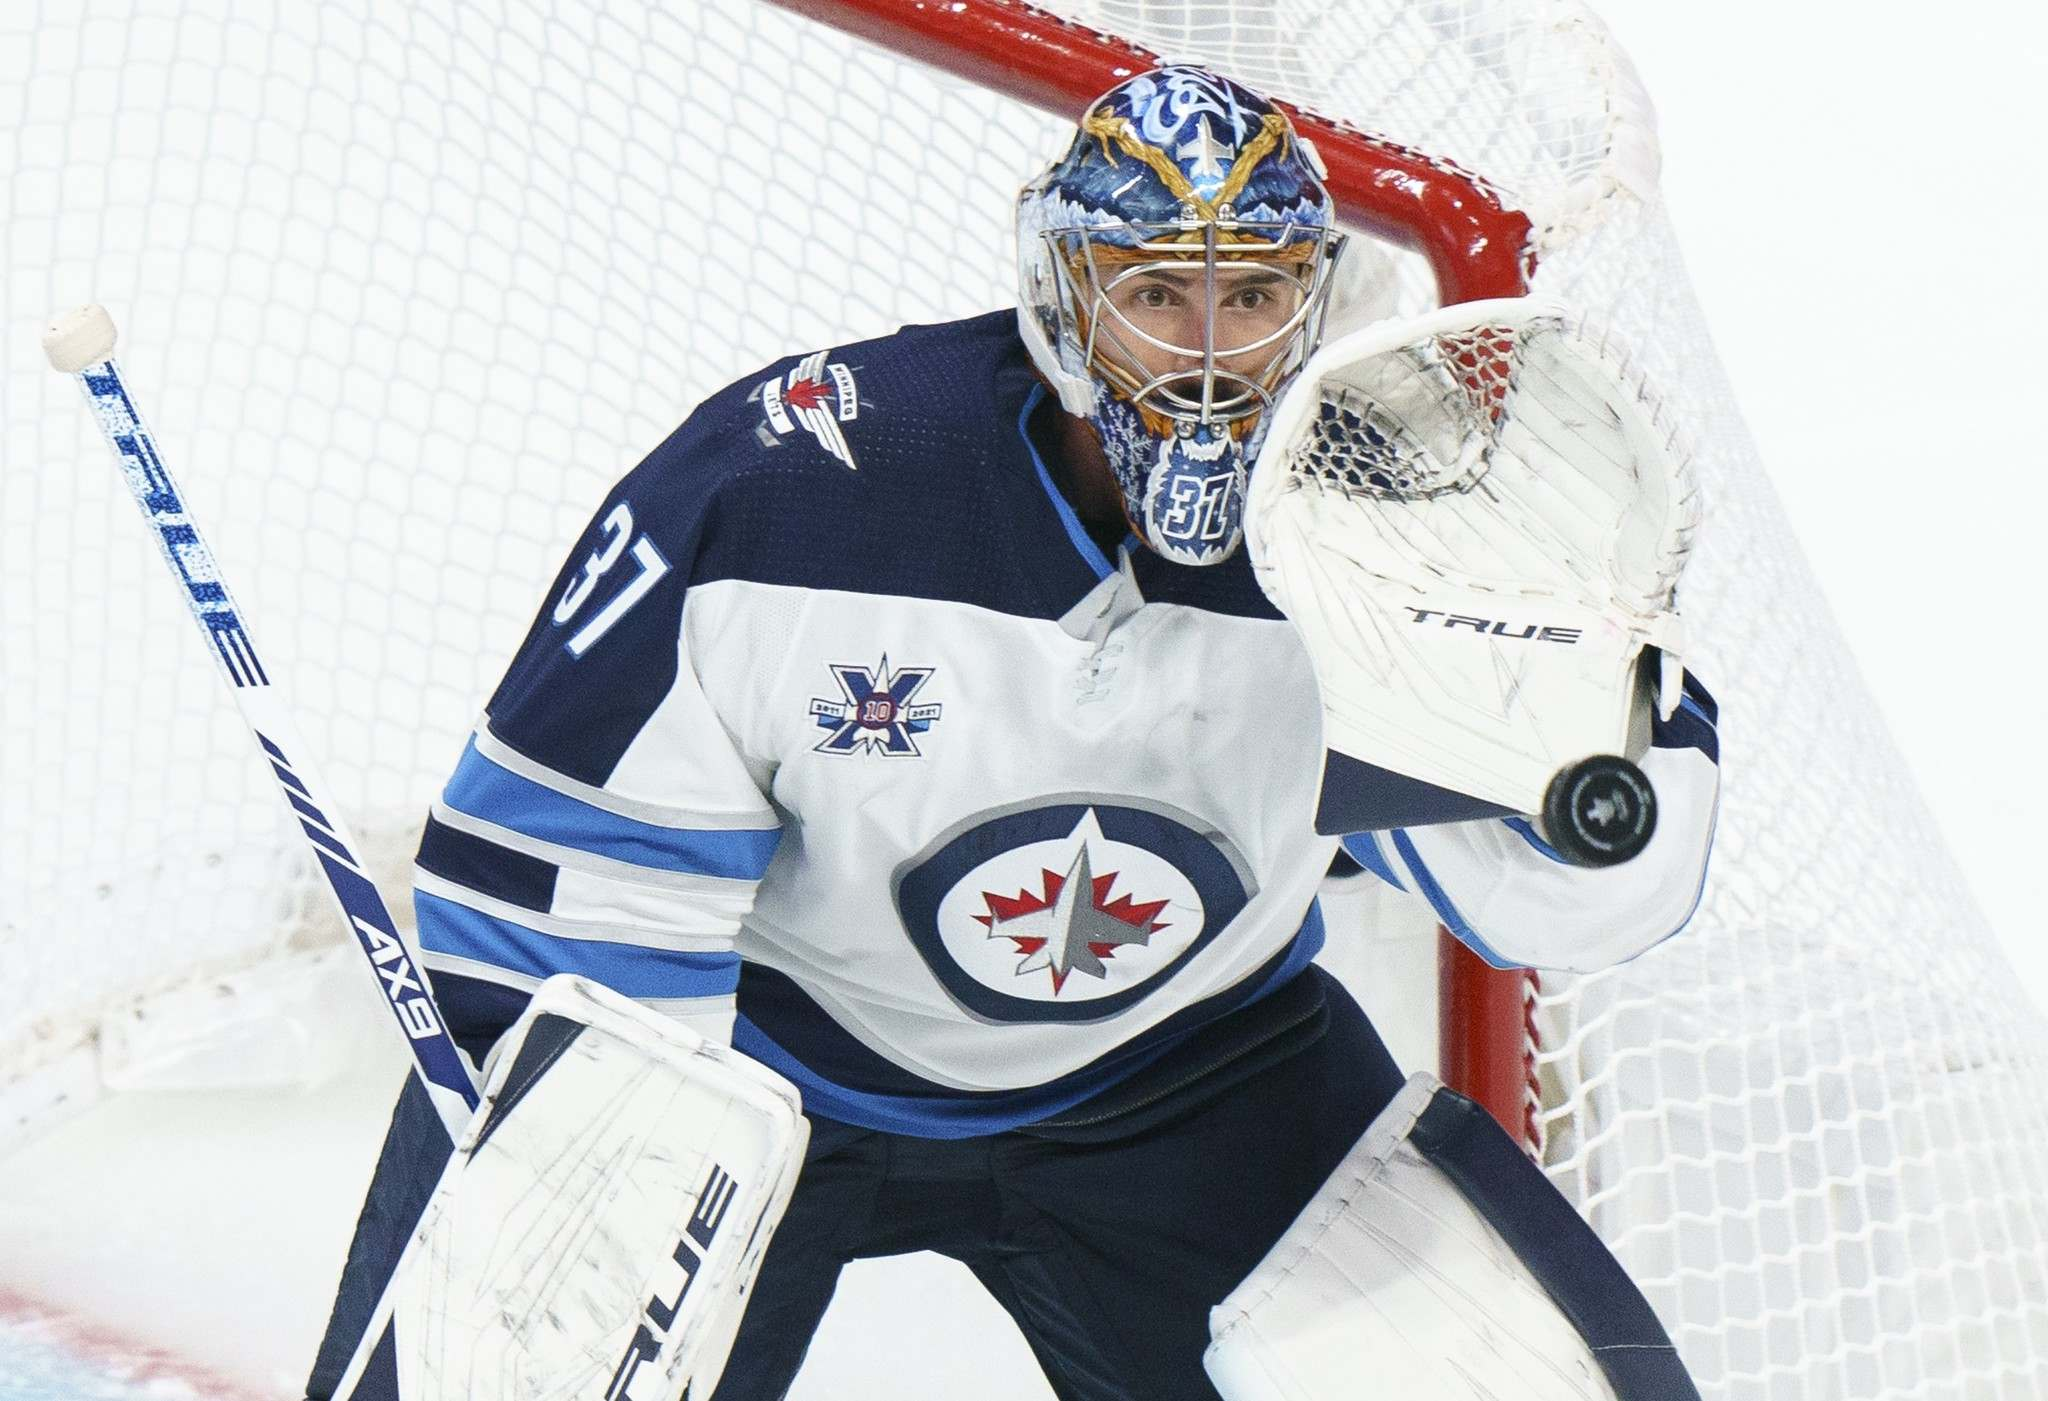 """THE CANADIAN PRESS/Paul Chiasson</p> Connor Hellebuyck, as confident as ever and never one to set the bar low, declared he thinks this franchise is on the verge of becoming a """"dynasty."""""""